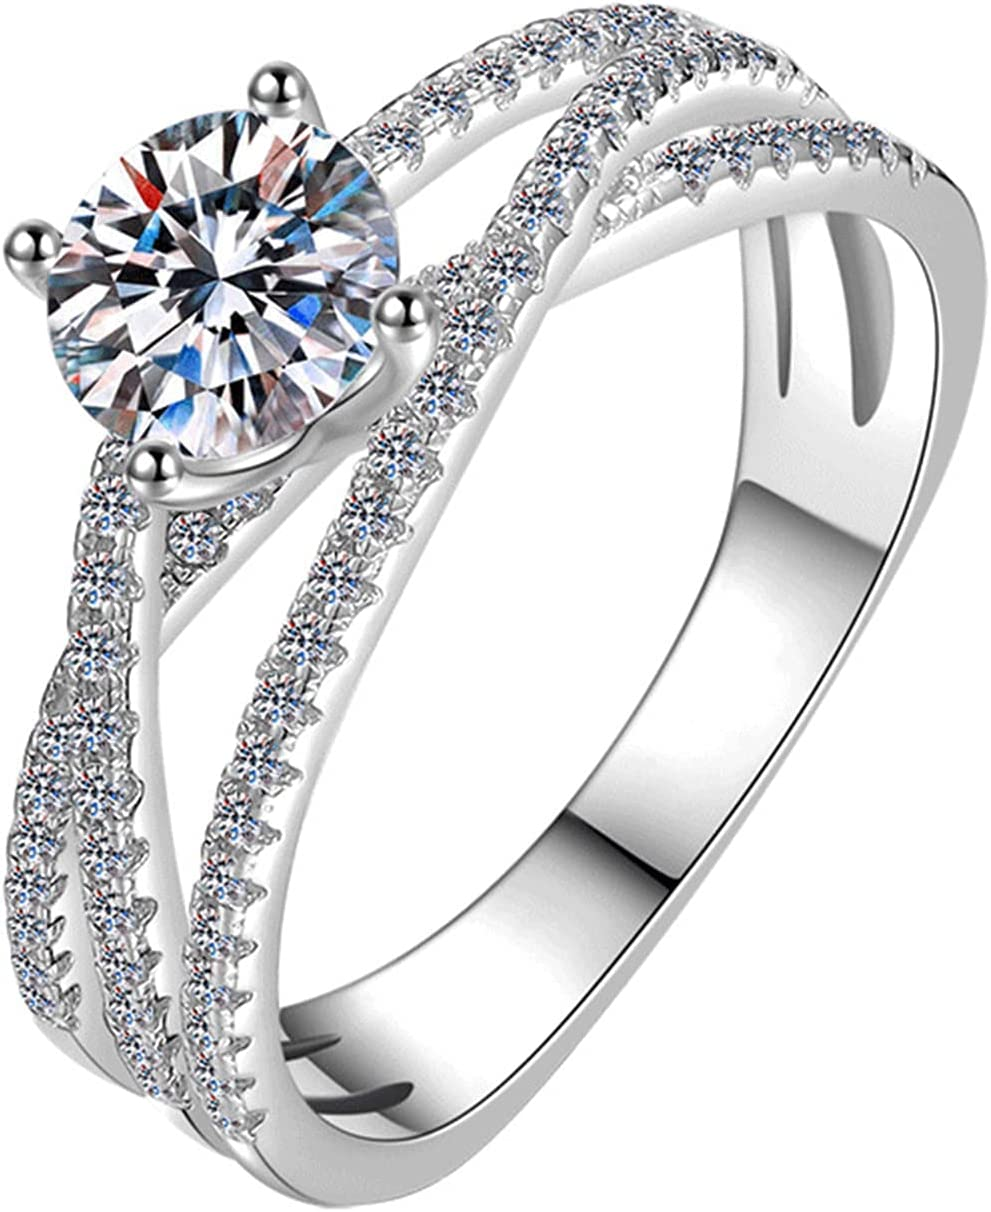 FPOJAFVN 925 Sterling Silver Moissanite Ring Fixed Ranking TOP9 price for sale Four Prong Diamond